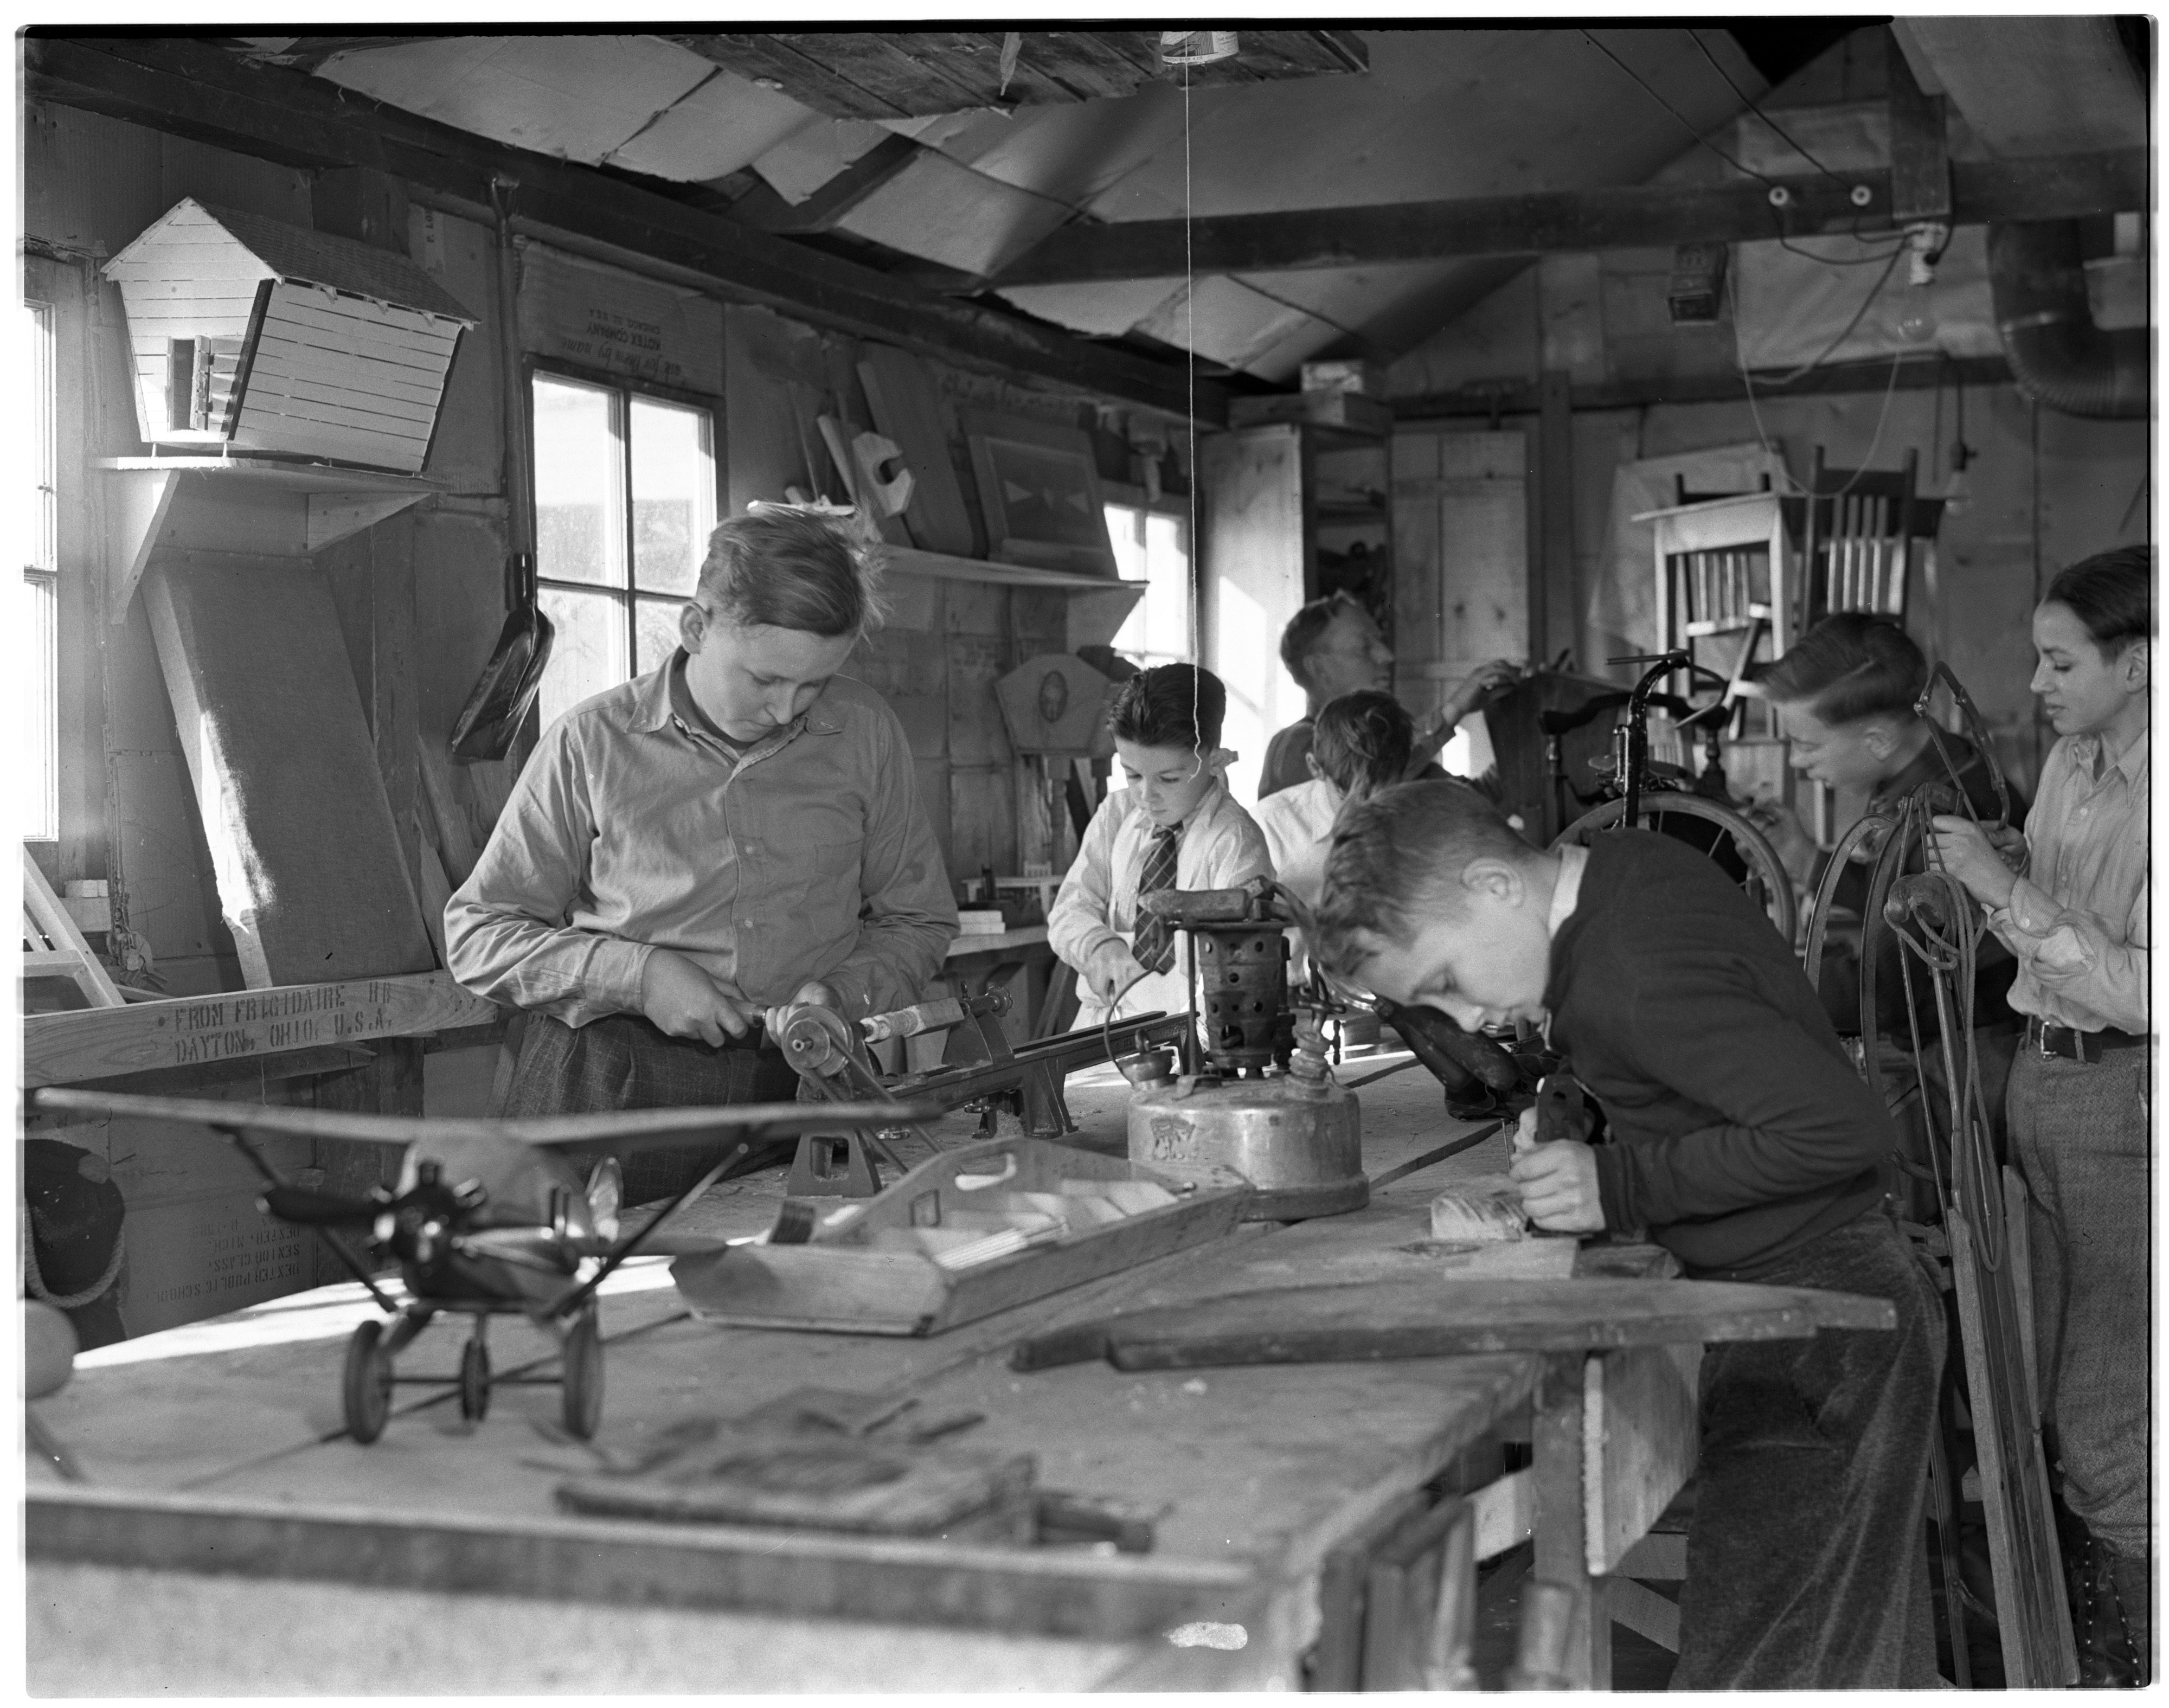 Boys in Workshop Making Toys, Dexter image